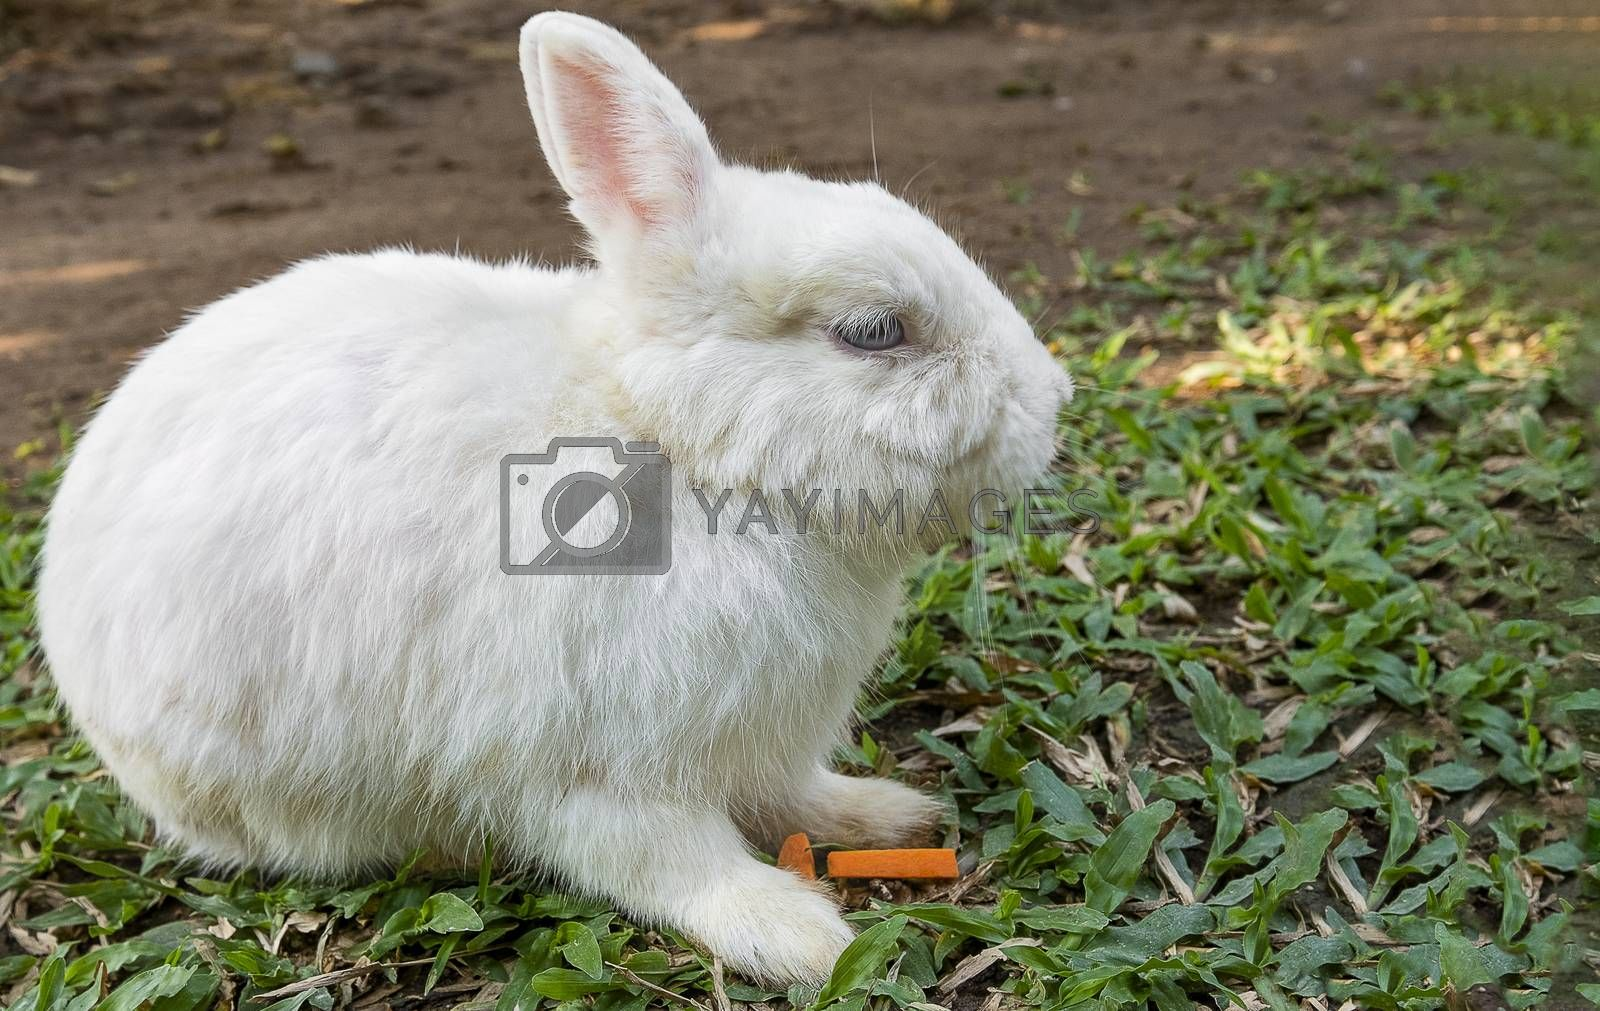 Cute little  blue-eyed creamy white baby bunny rabbit sitting  on a green lawn waiting to be petted in the afternoon sun. Easter, spring, summer concept.